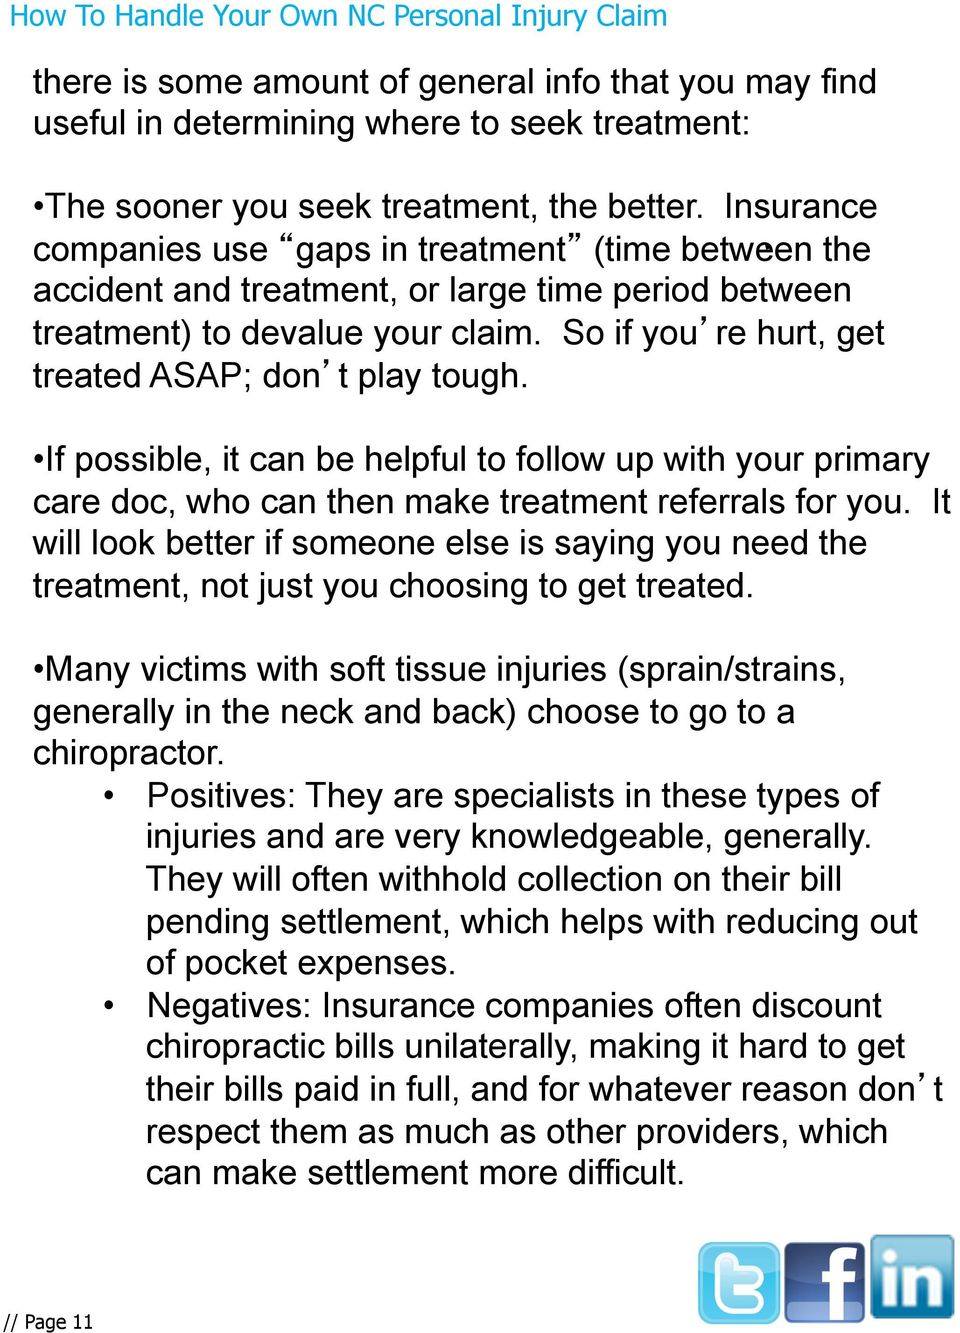 So if you re hurt, get treated ASAP; don t play tough.. If possible, it can be helpful to follow up with your primary care doc, who can then make treatment referrals for you.